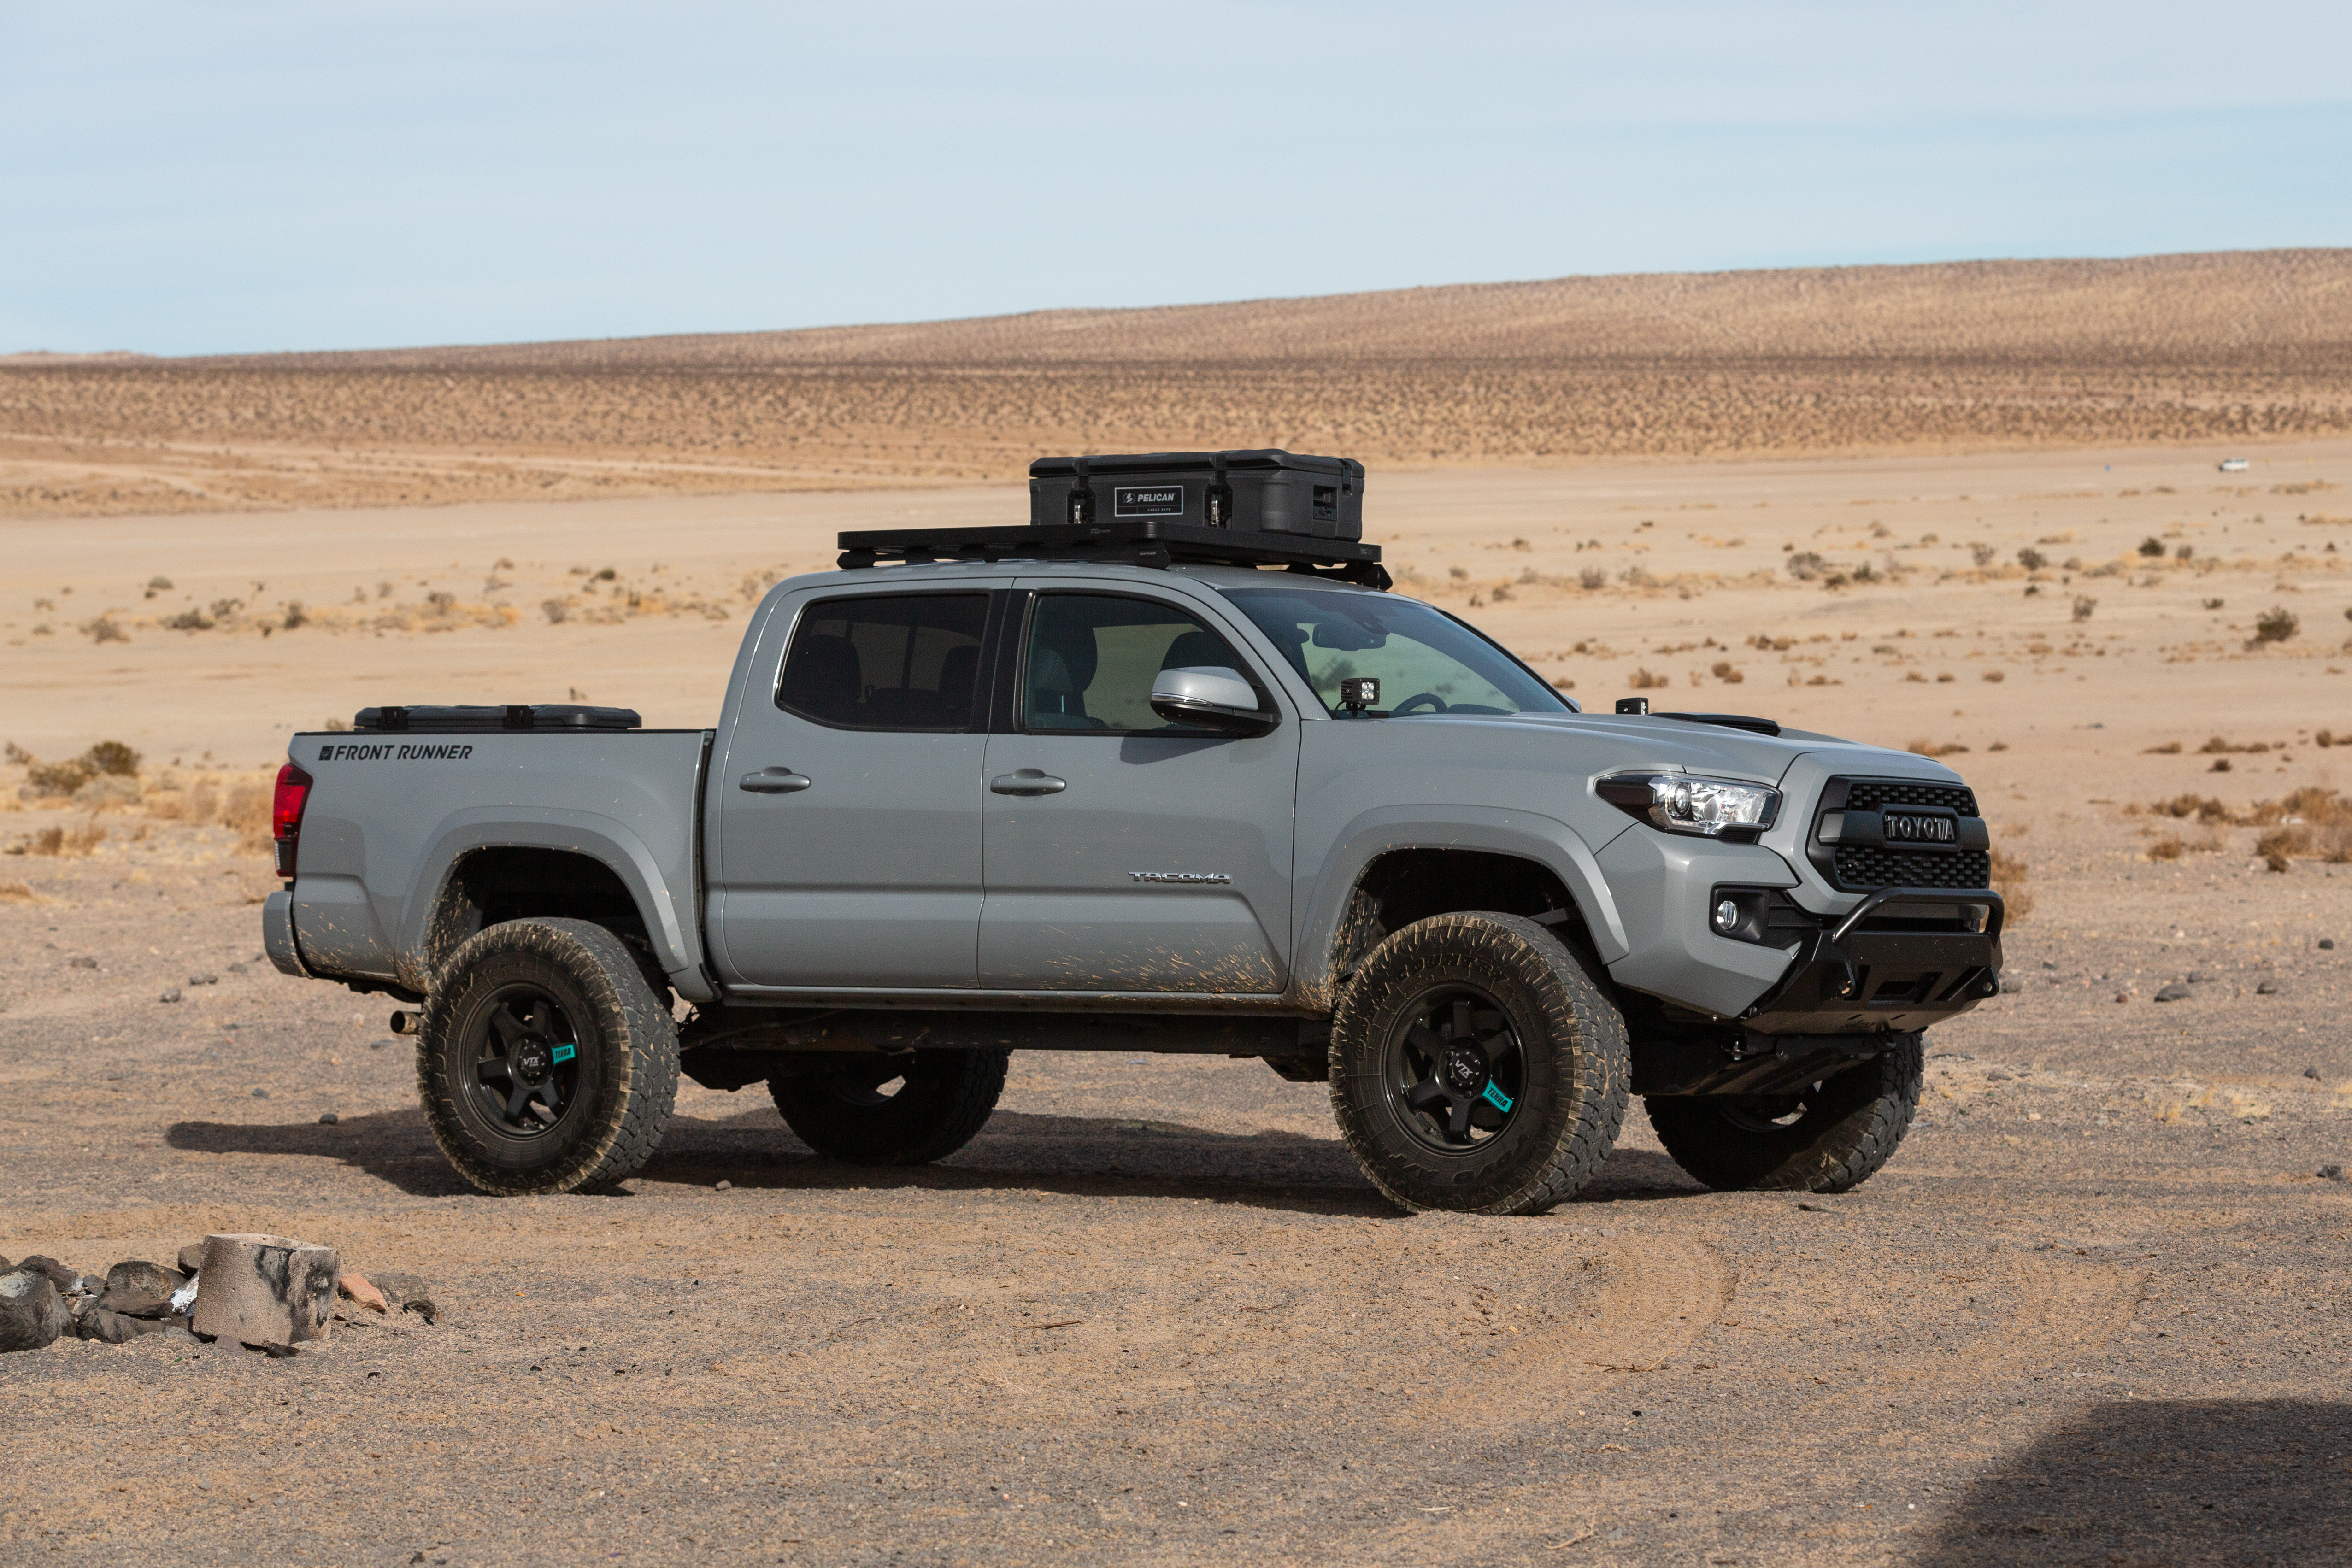 New Pelican CARGO Cases For The Off-Road Enthusiast